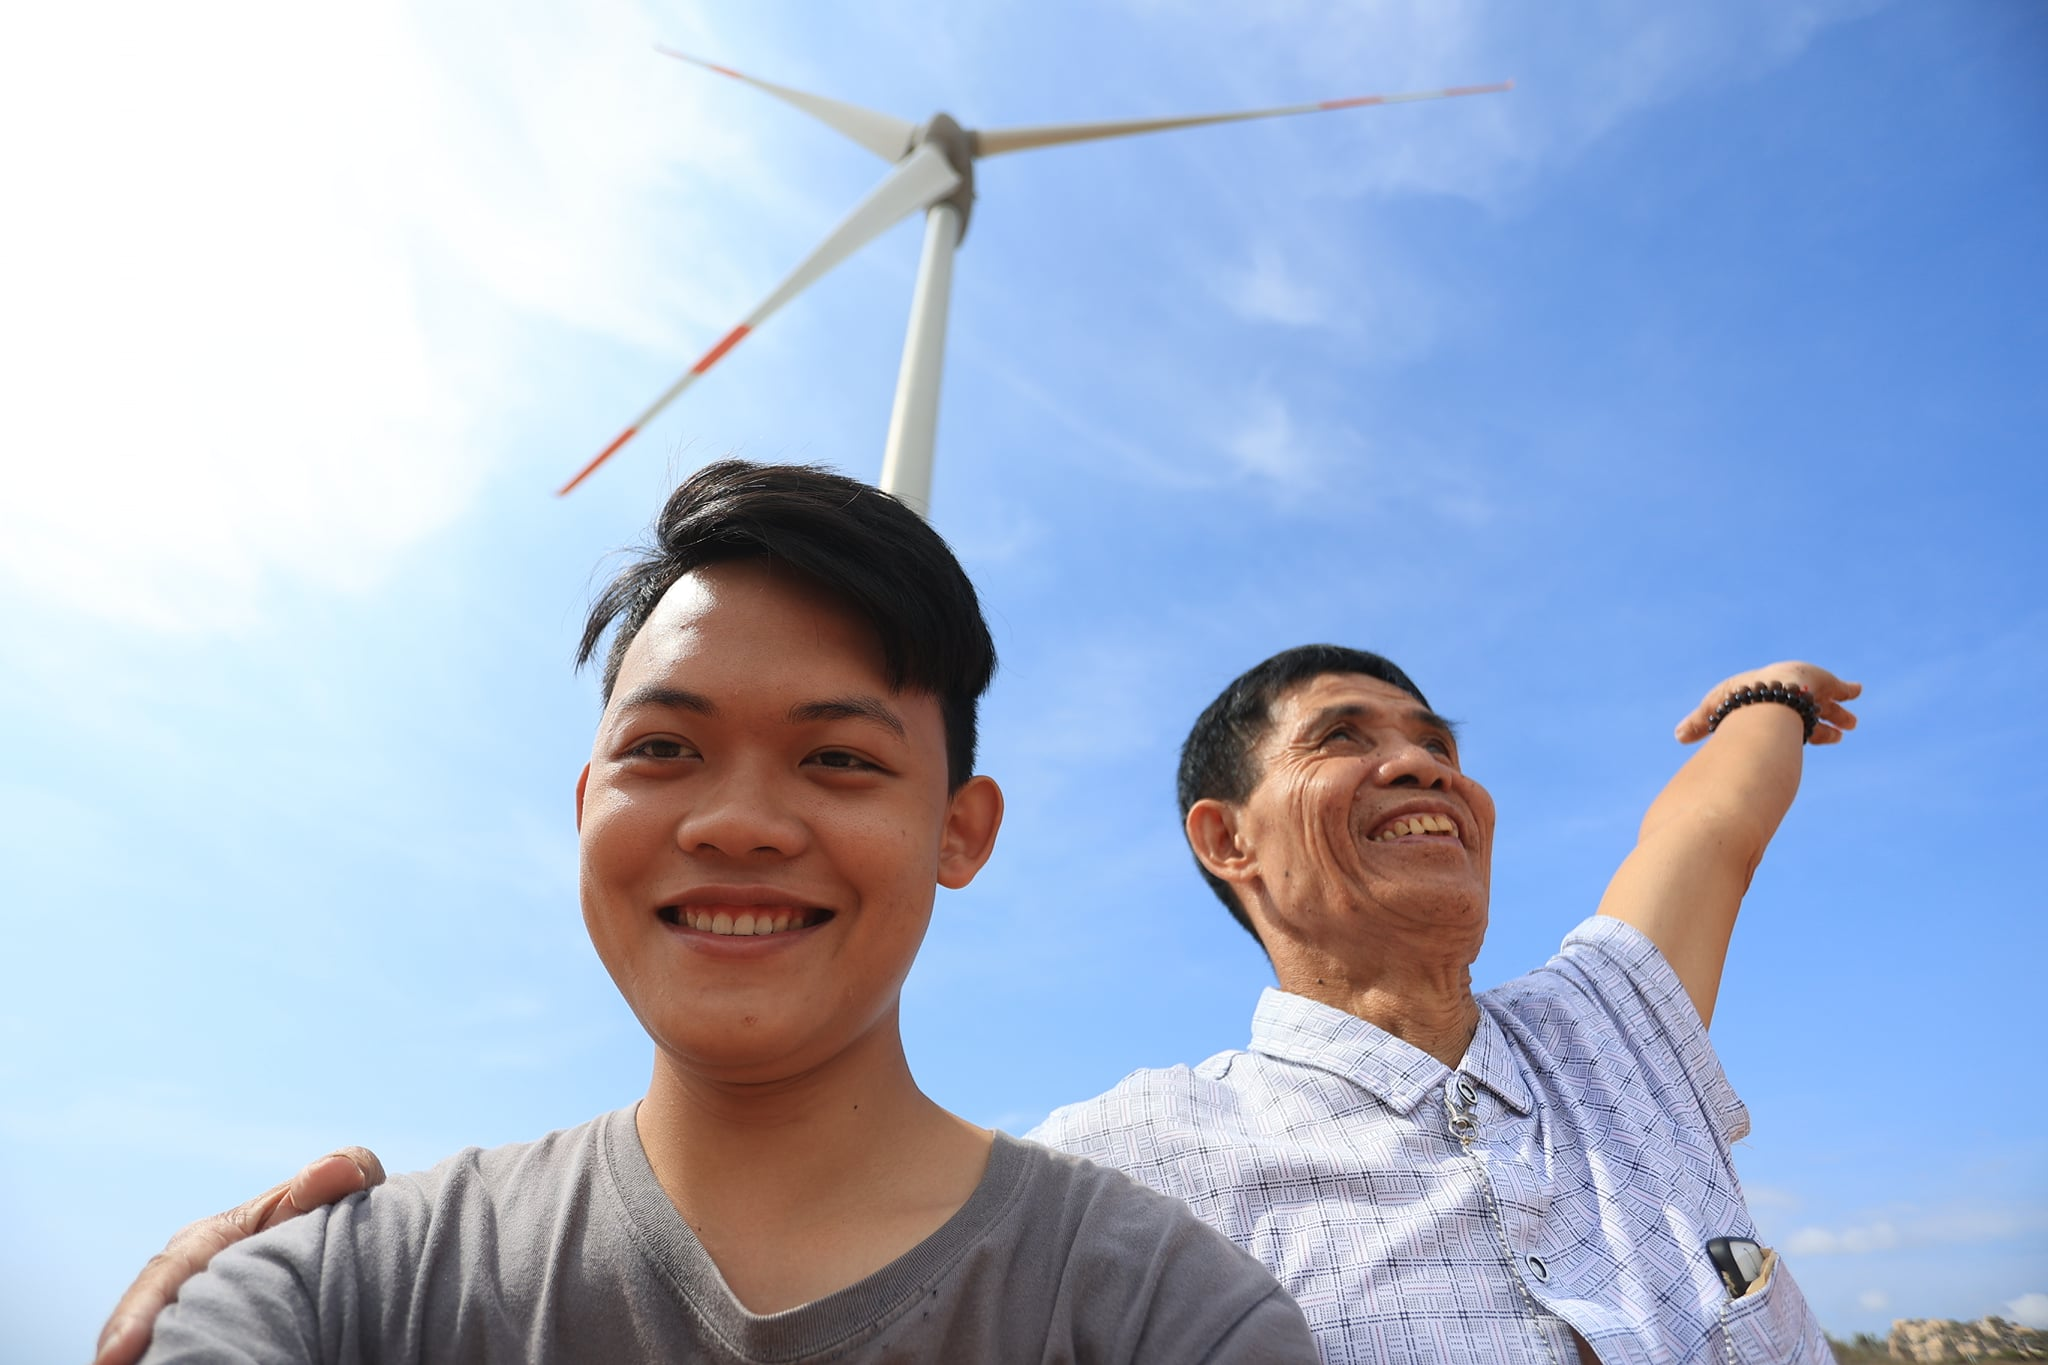 Chu Dinh Hoa (R) and Hoang Tien Dat take a selfie while visiting the central province of Ninh Thuan in April 2021. Photo: Hoang Tien Dat